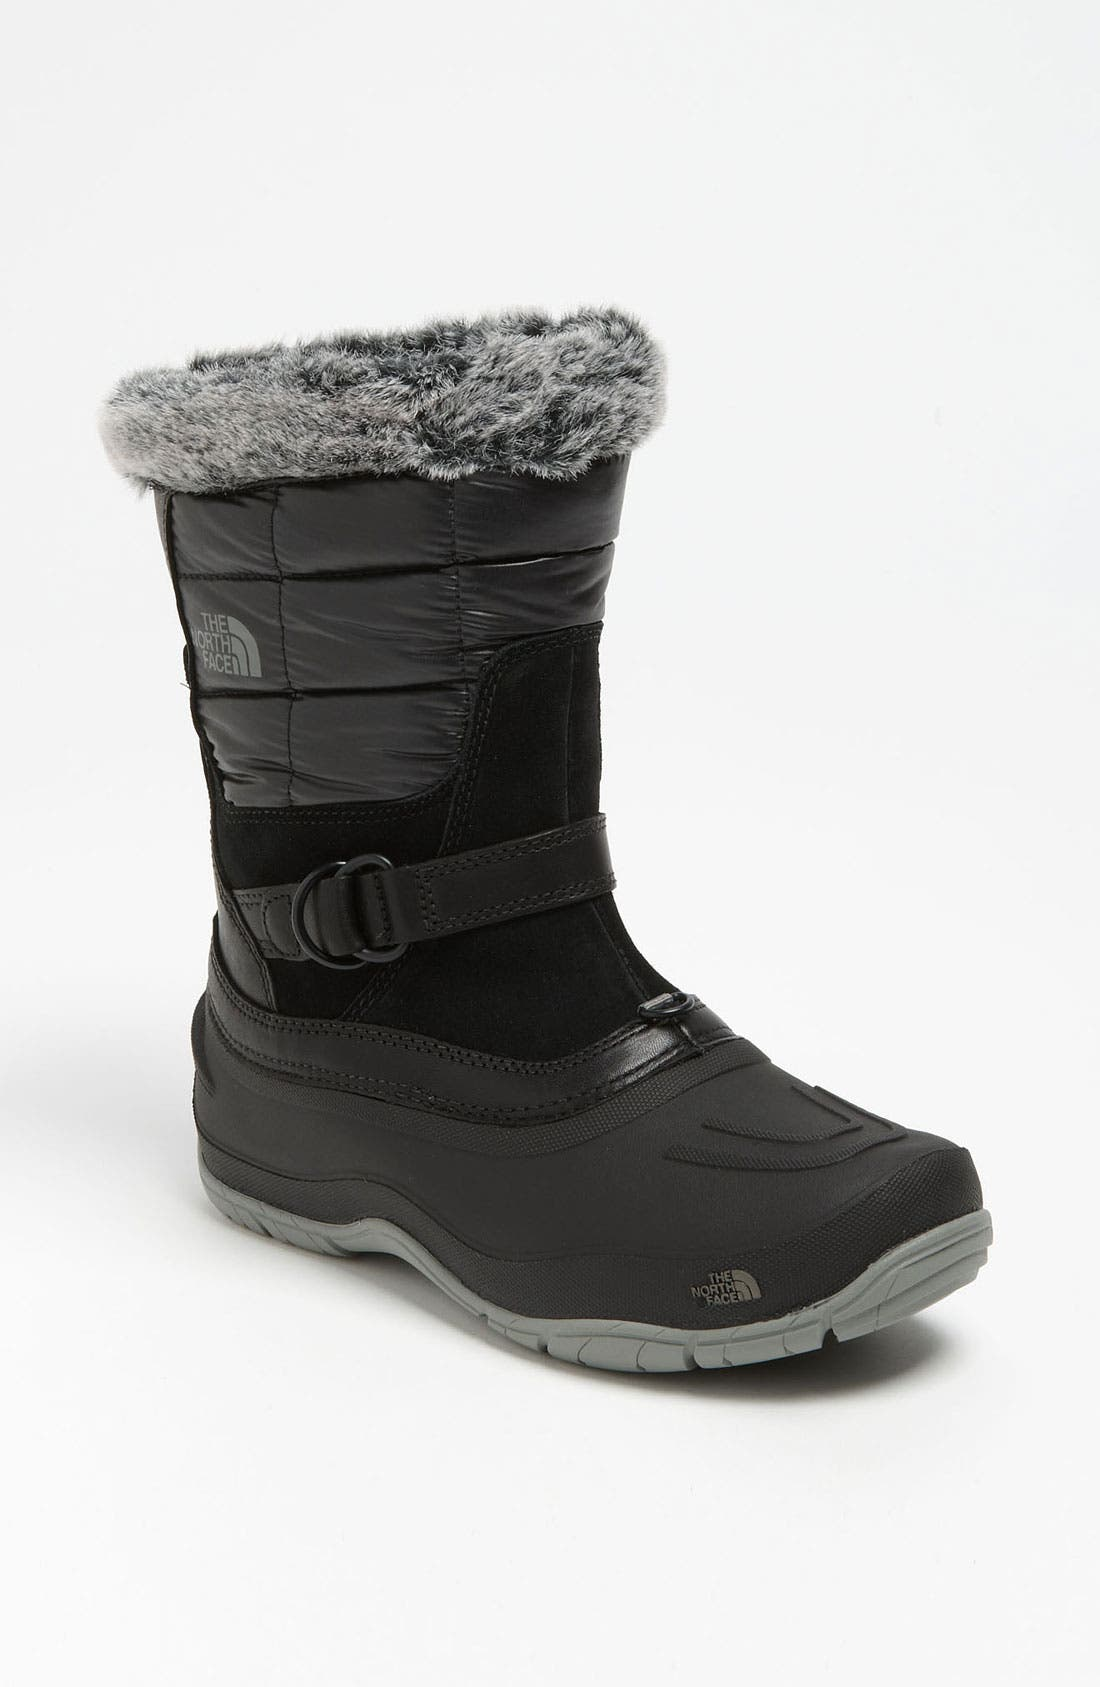 Main Image - The North Face 'Shellista' Boot